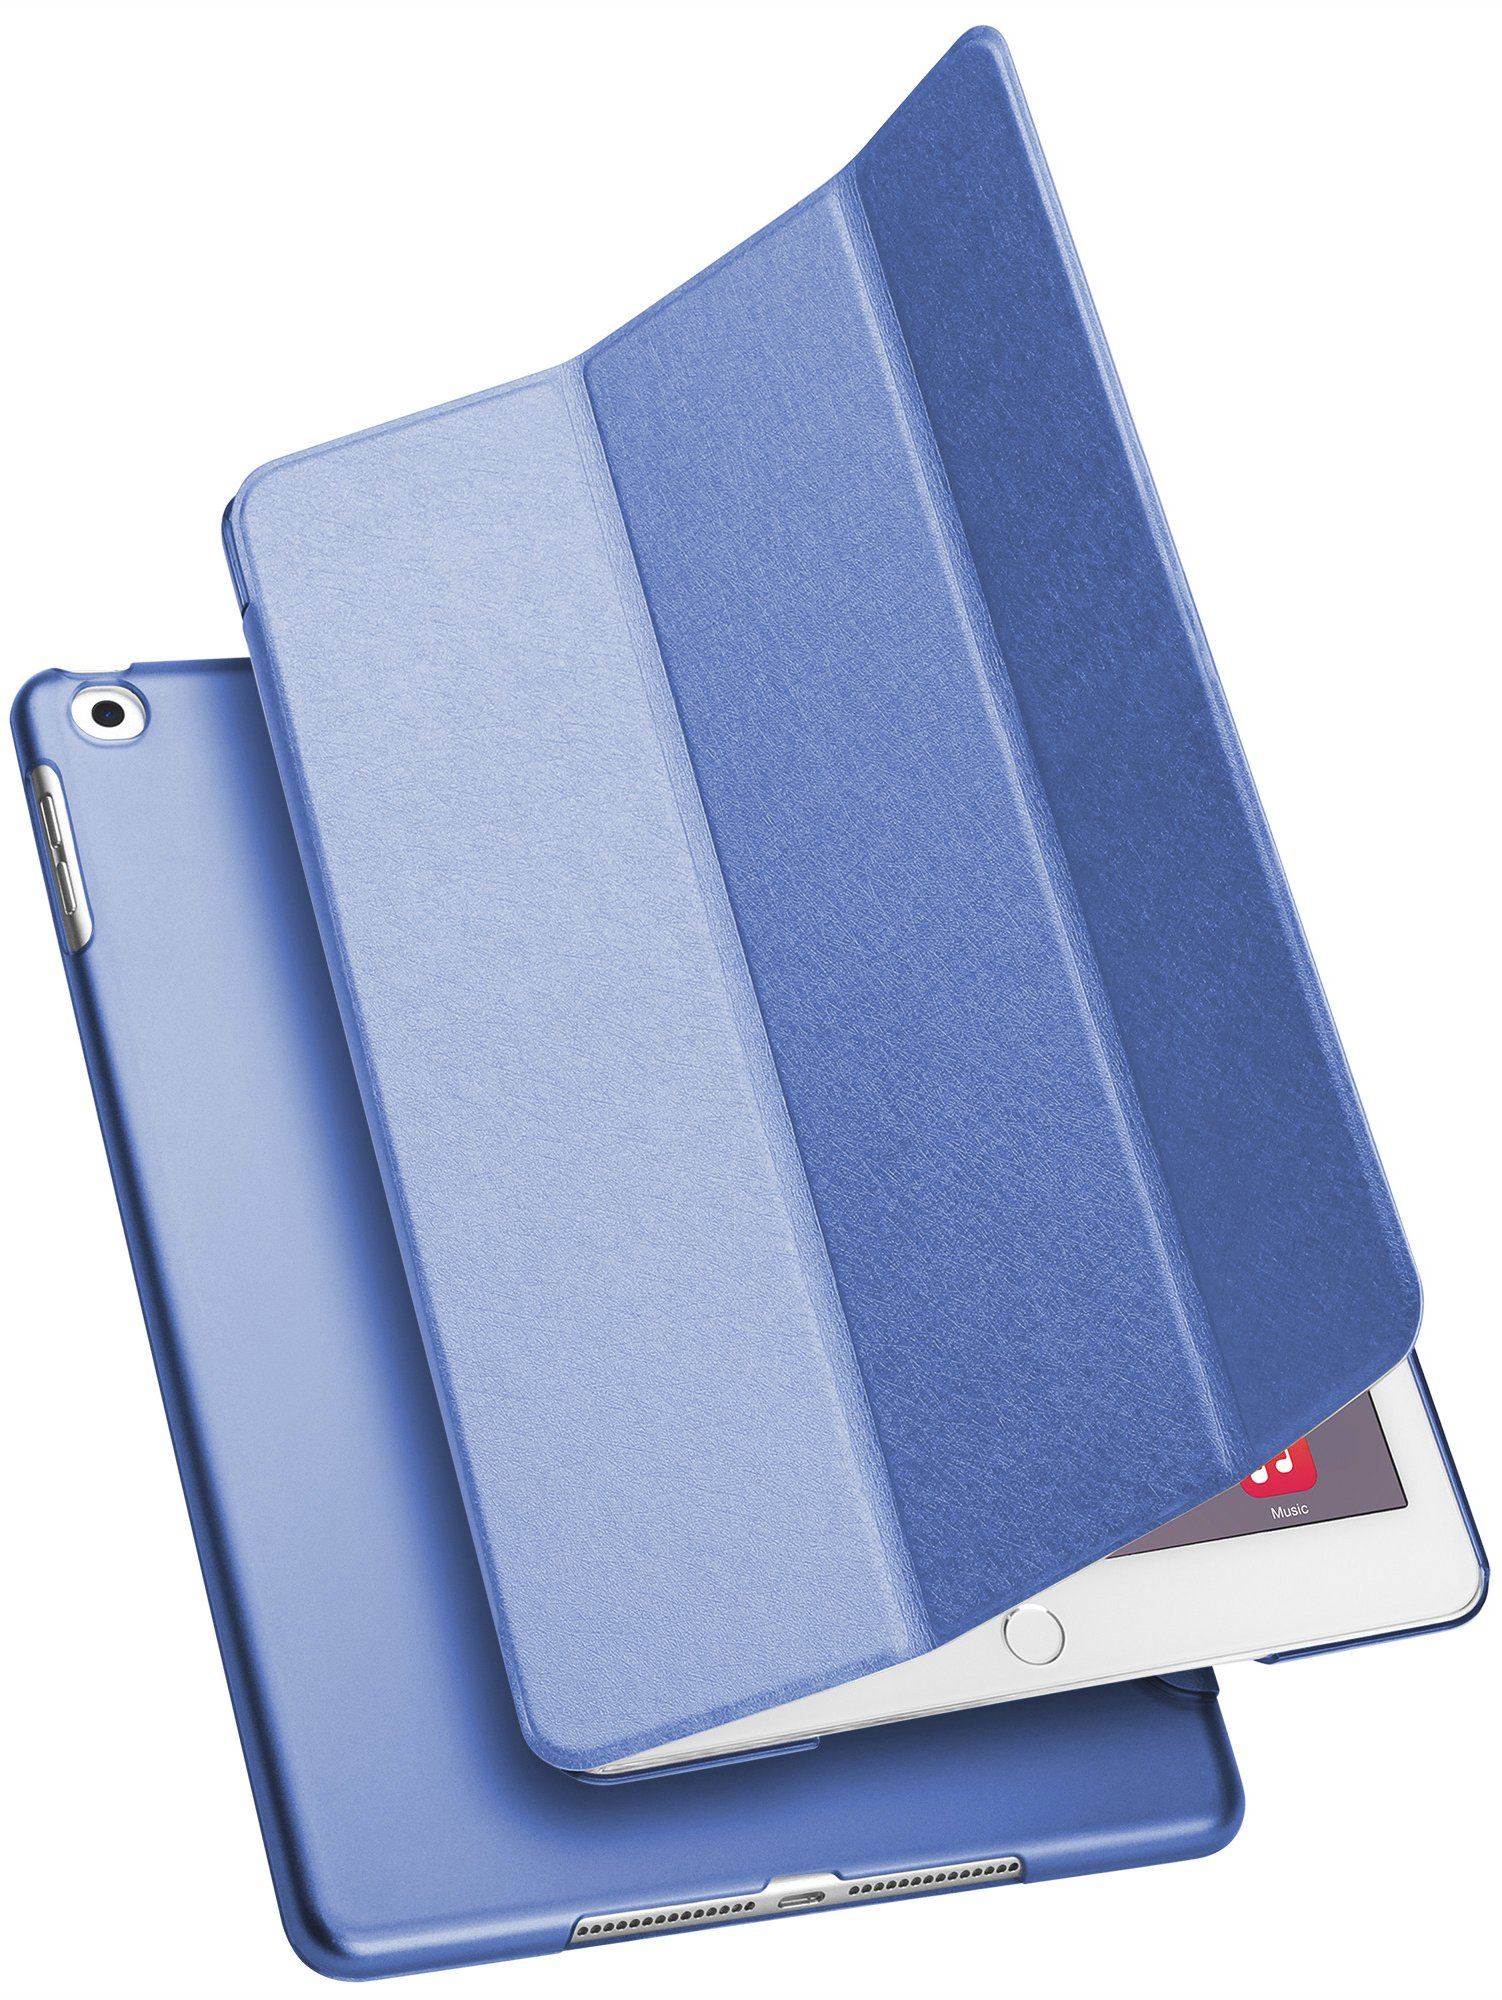 GMYLE iPad Case 9.7 Case, Auto Sleep Wake Smart Cover & Multi-Angle Trifold Stand, PU Leather Slim Lightweight Folio for iPad 9.7 inch 6th Generation 2018 / 5th Generation 2017, Cobalt Blue